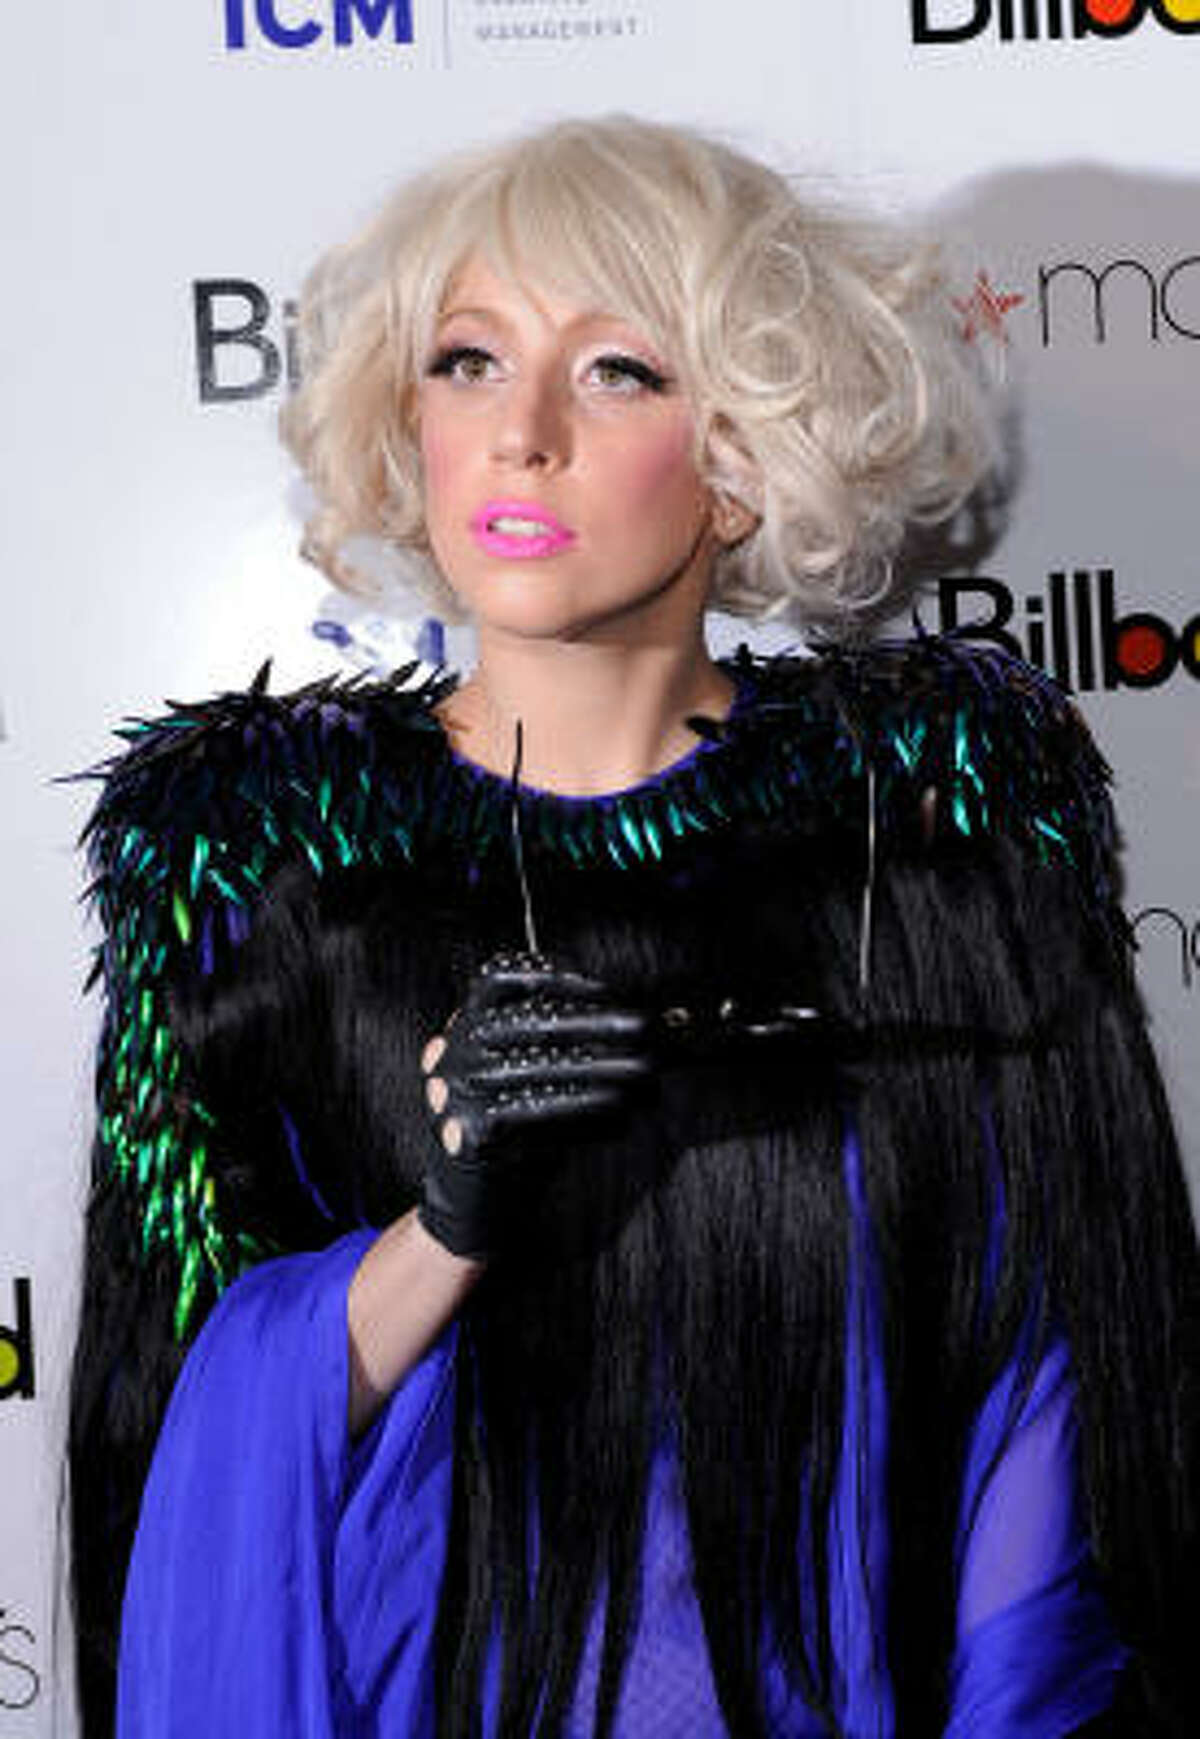 Lady Gaga takes it back with feathers and accentuated shoulders.